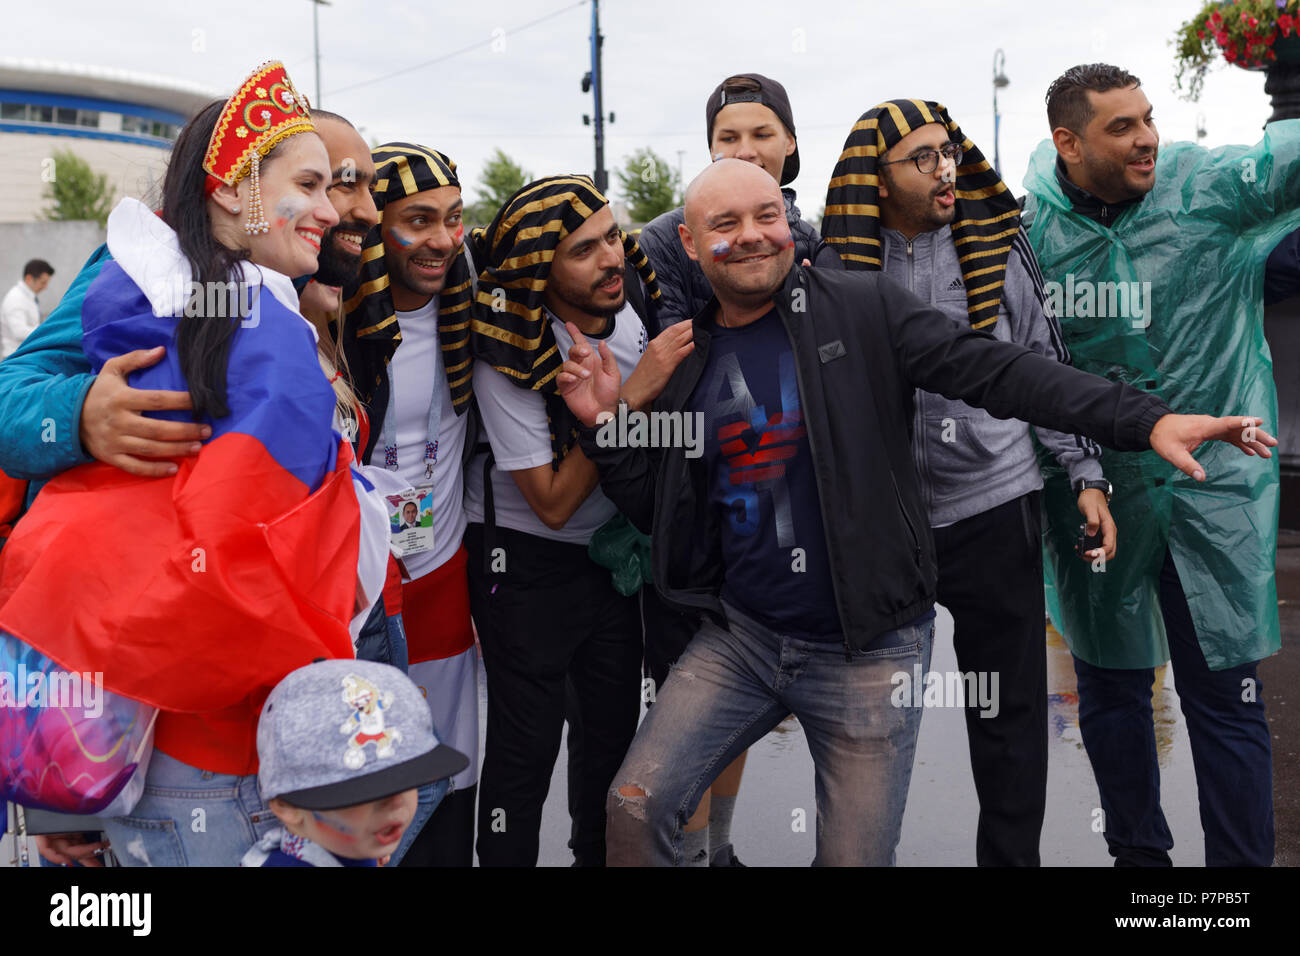 St. Petersburg, Russia - June 19, 2018: Egyptian and Russian football fans make photo at Saint Petersburg Stadium before the FIFA World Cup 2018 match - Stock Image